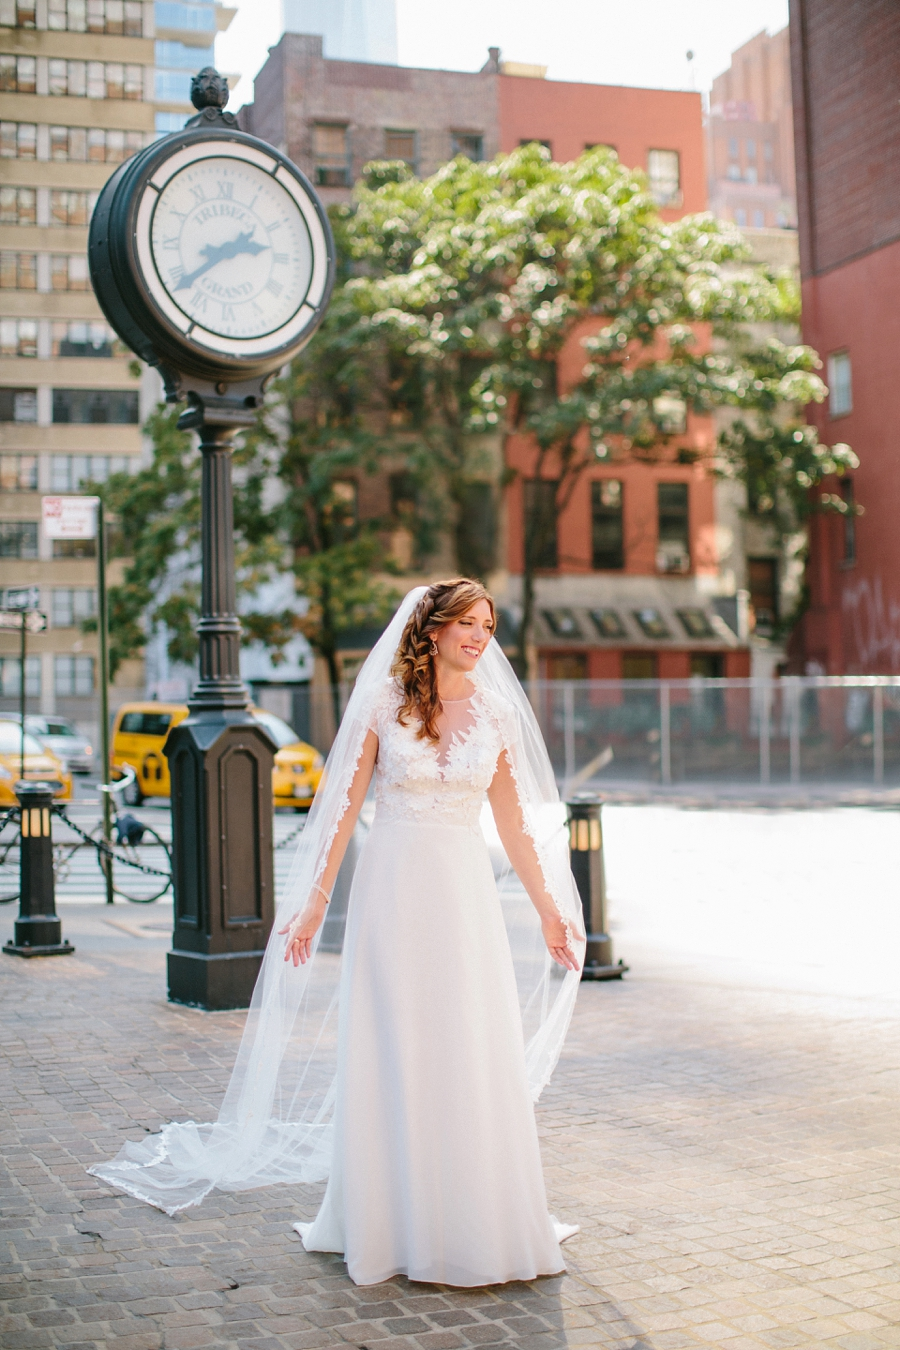 NYC-destination-wedding-photographer-tribeca-intimate-church_0010.jpg